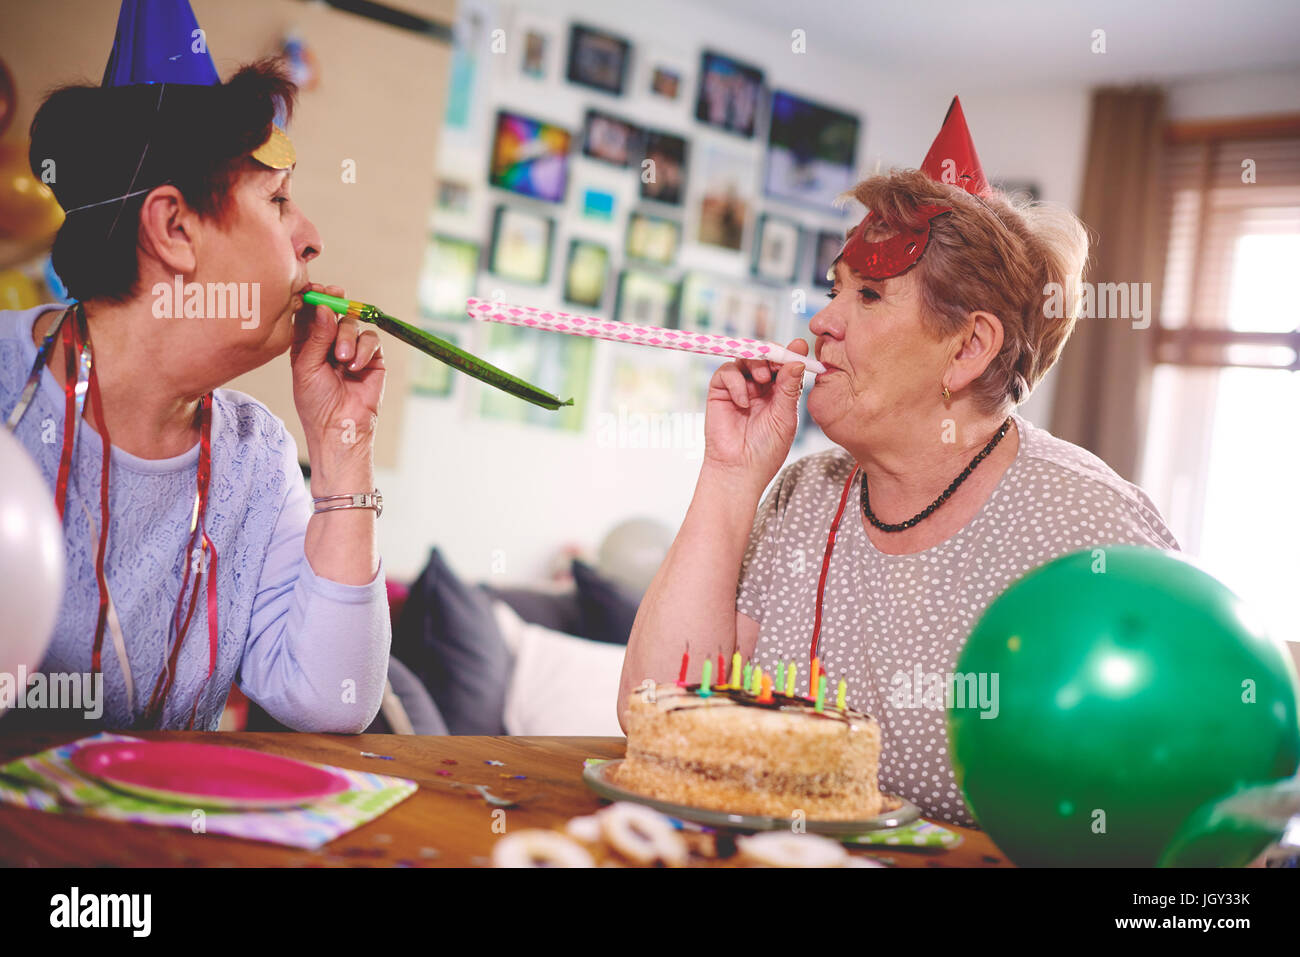 Senior women blowing party favor at each other - Stock Image